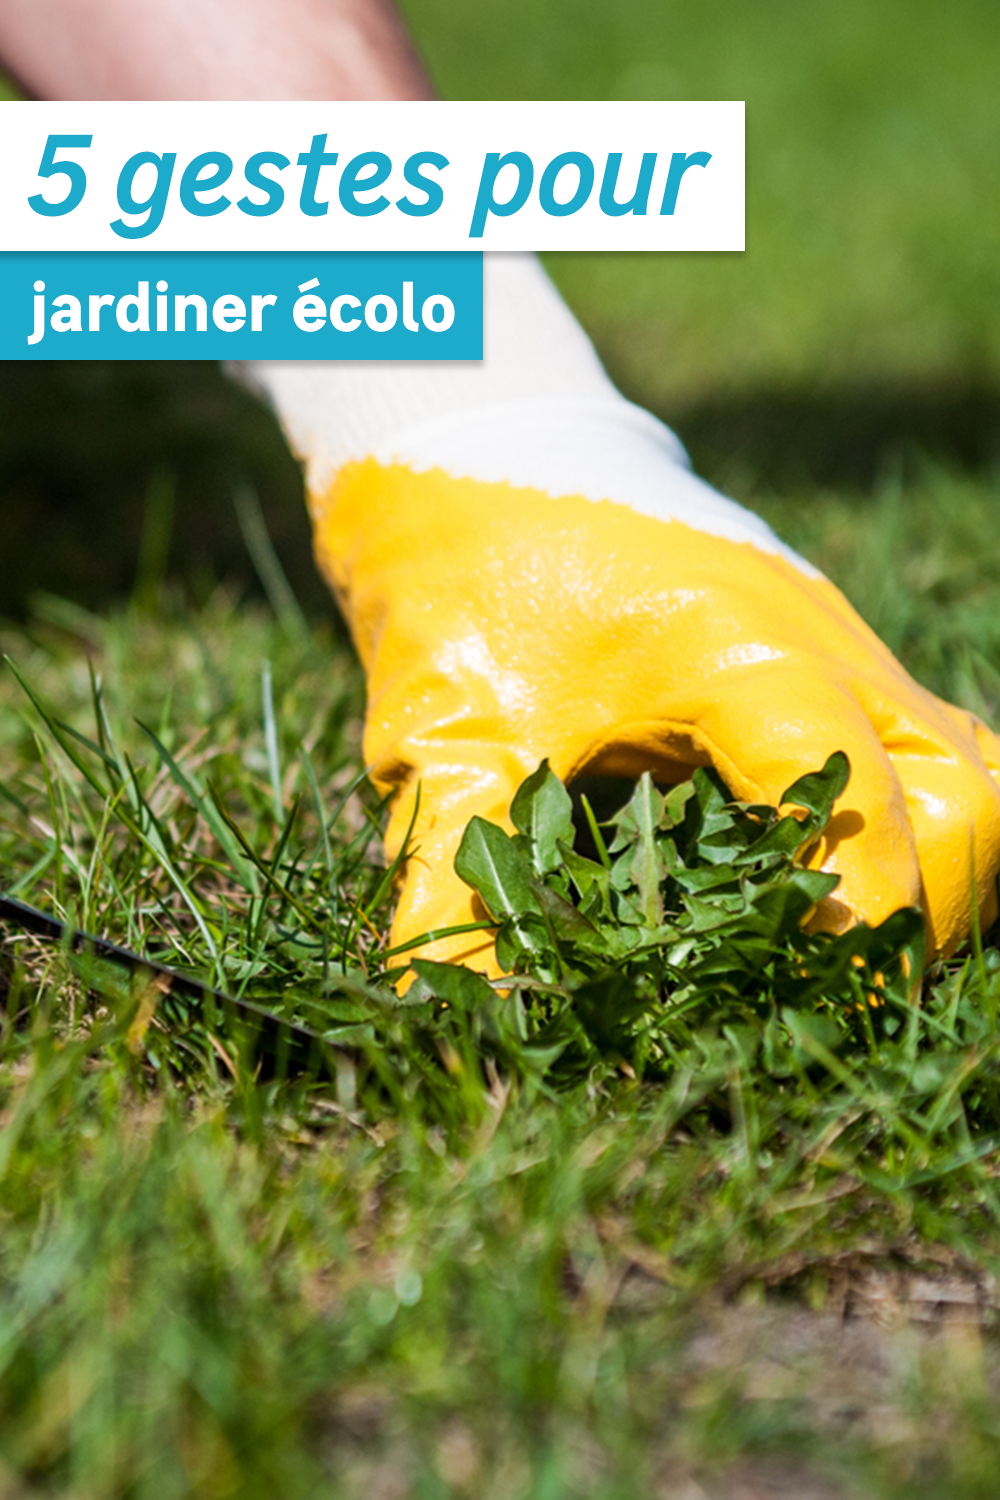 Nos Idees De Jardinage Ecolo En 2020 Faire Son Compost Jardinage Bio Idees De Jardinage